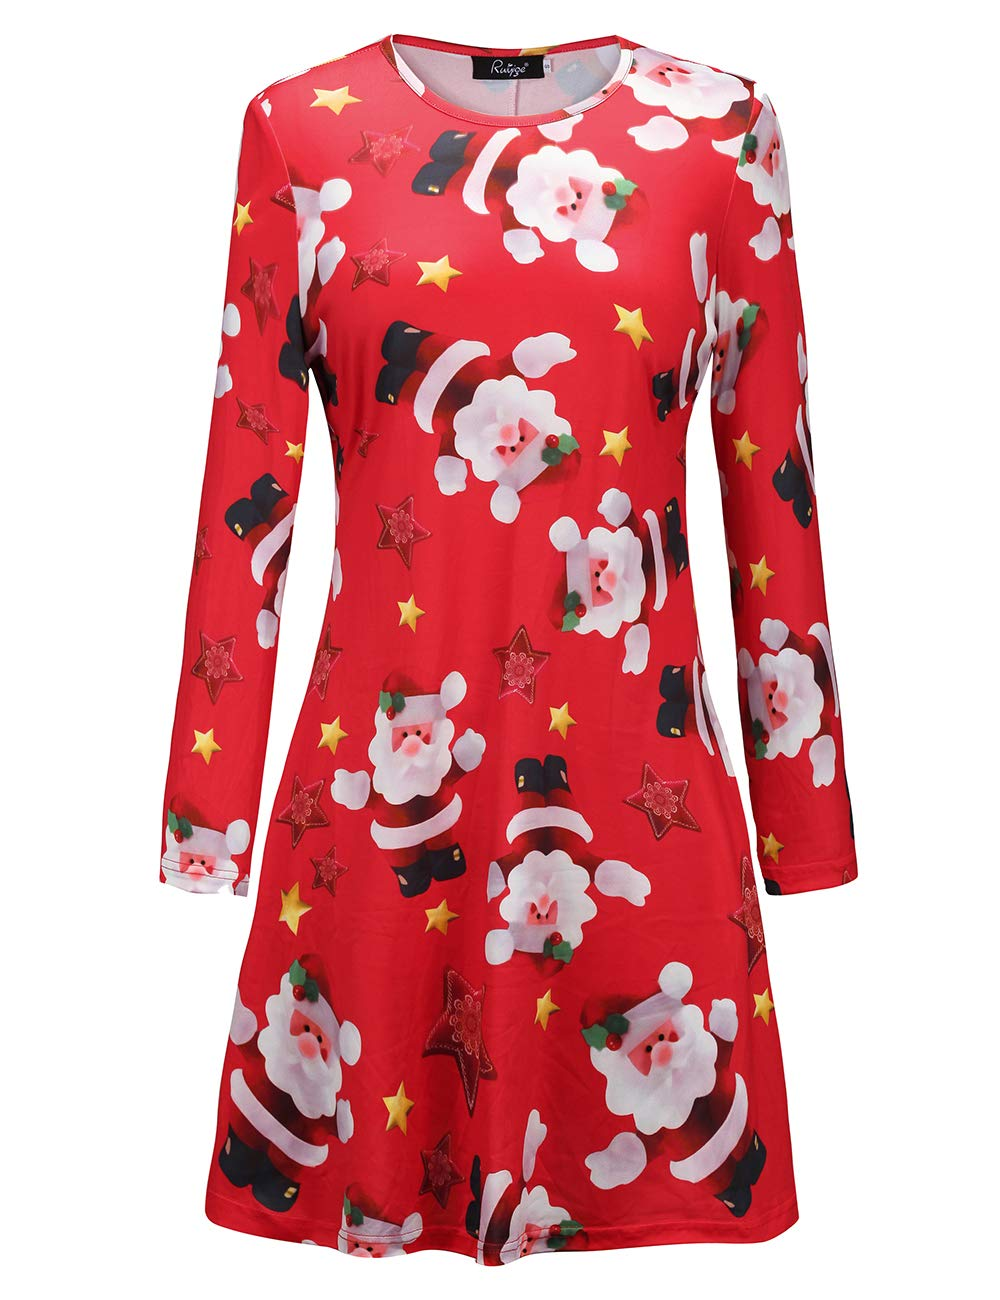 Ruiyige Womens Long Sleeve Christmas Printed Loose Fit Mini Dress,#L1038 Red Large…